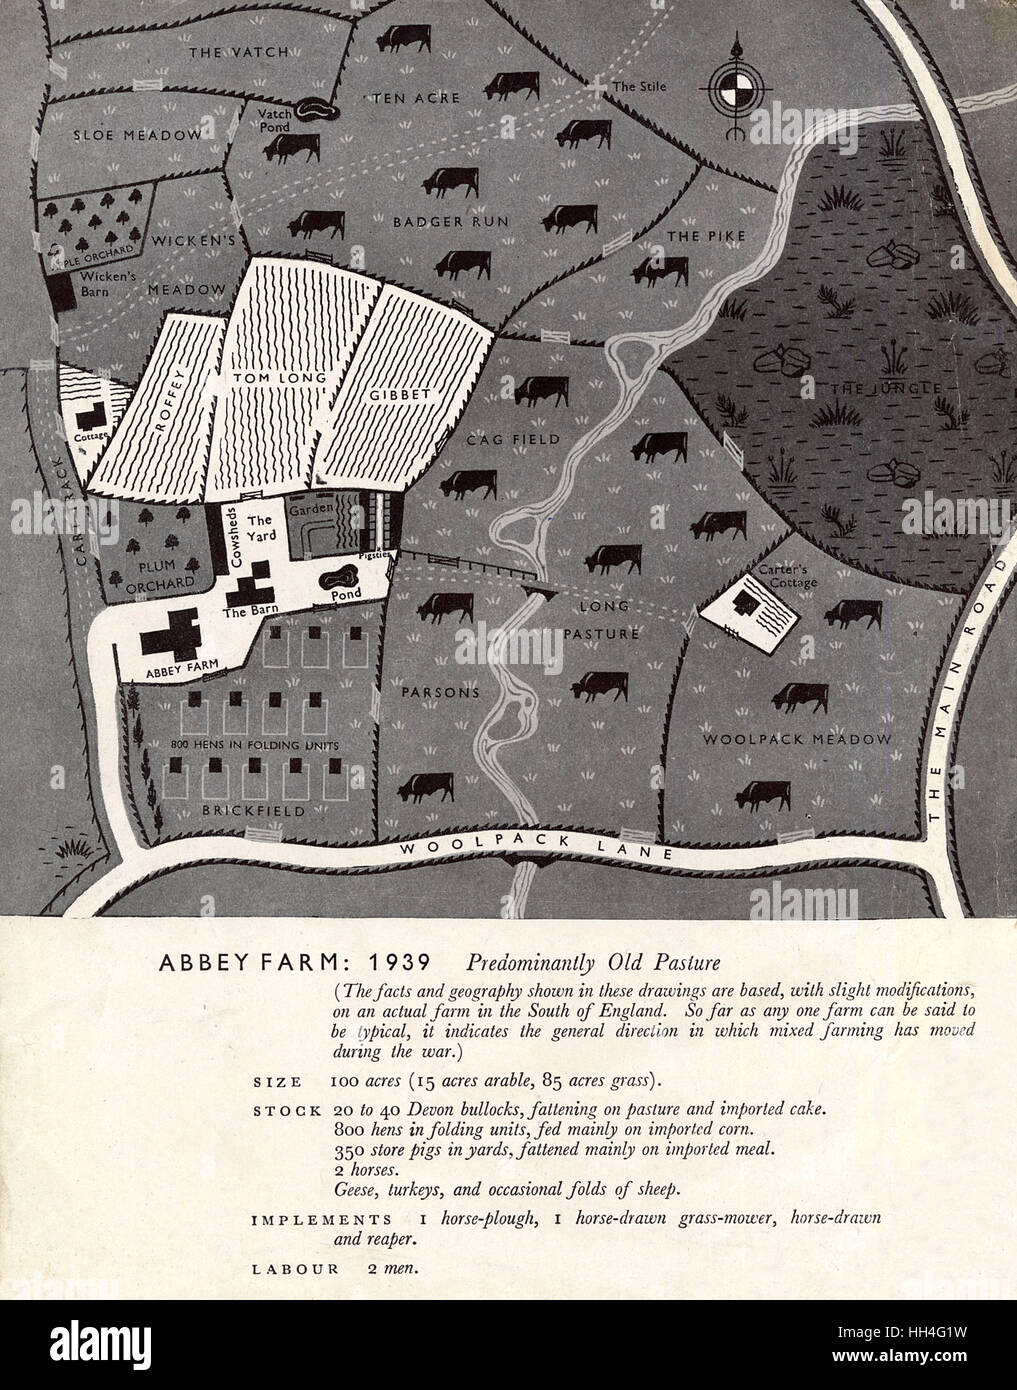 Abbey Farm - 1939. The standard farm layout pre-WW2 in Britain (from 1939) showing the layout of fields and crops, - Stock Image